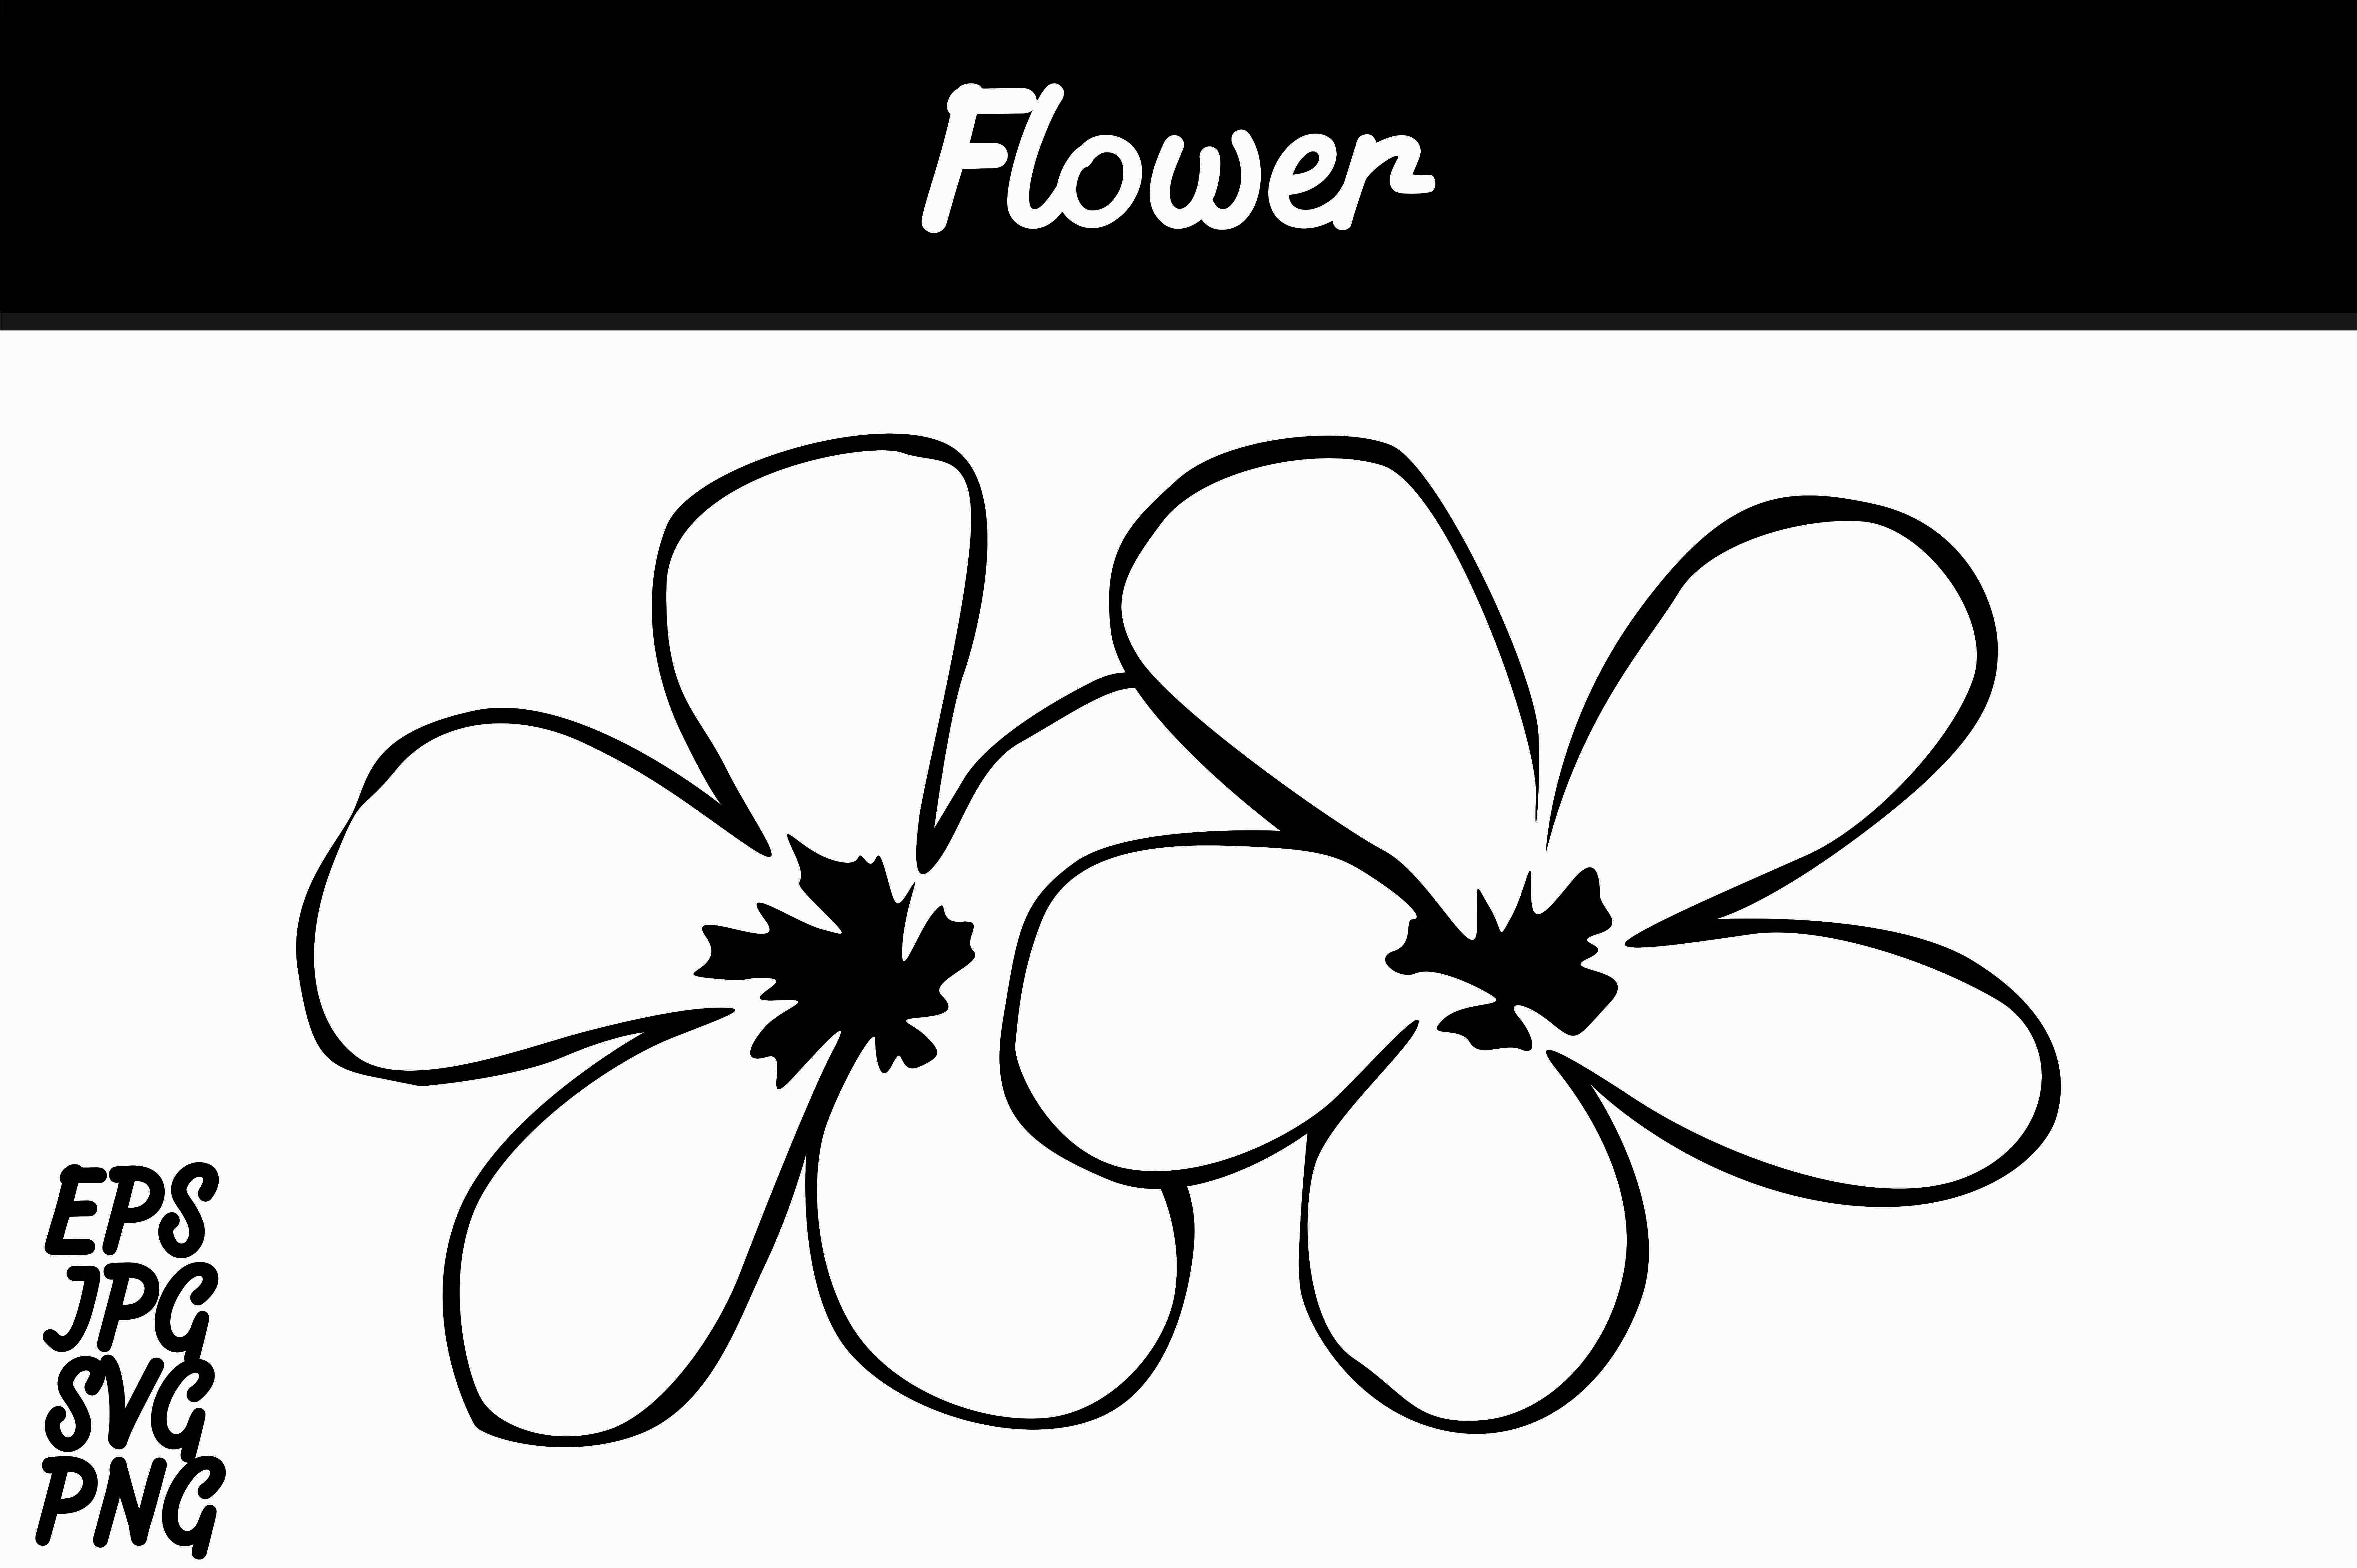 Download Free Line Art Flower Svg Vector Image Graphic By Arief Sapta Adjie for Cricut Explore, Silhouette and other cutting machines.